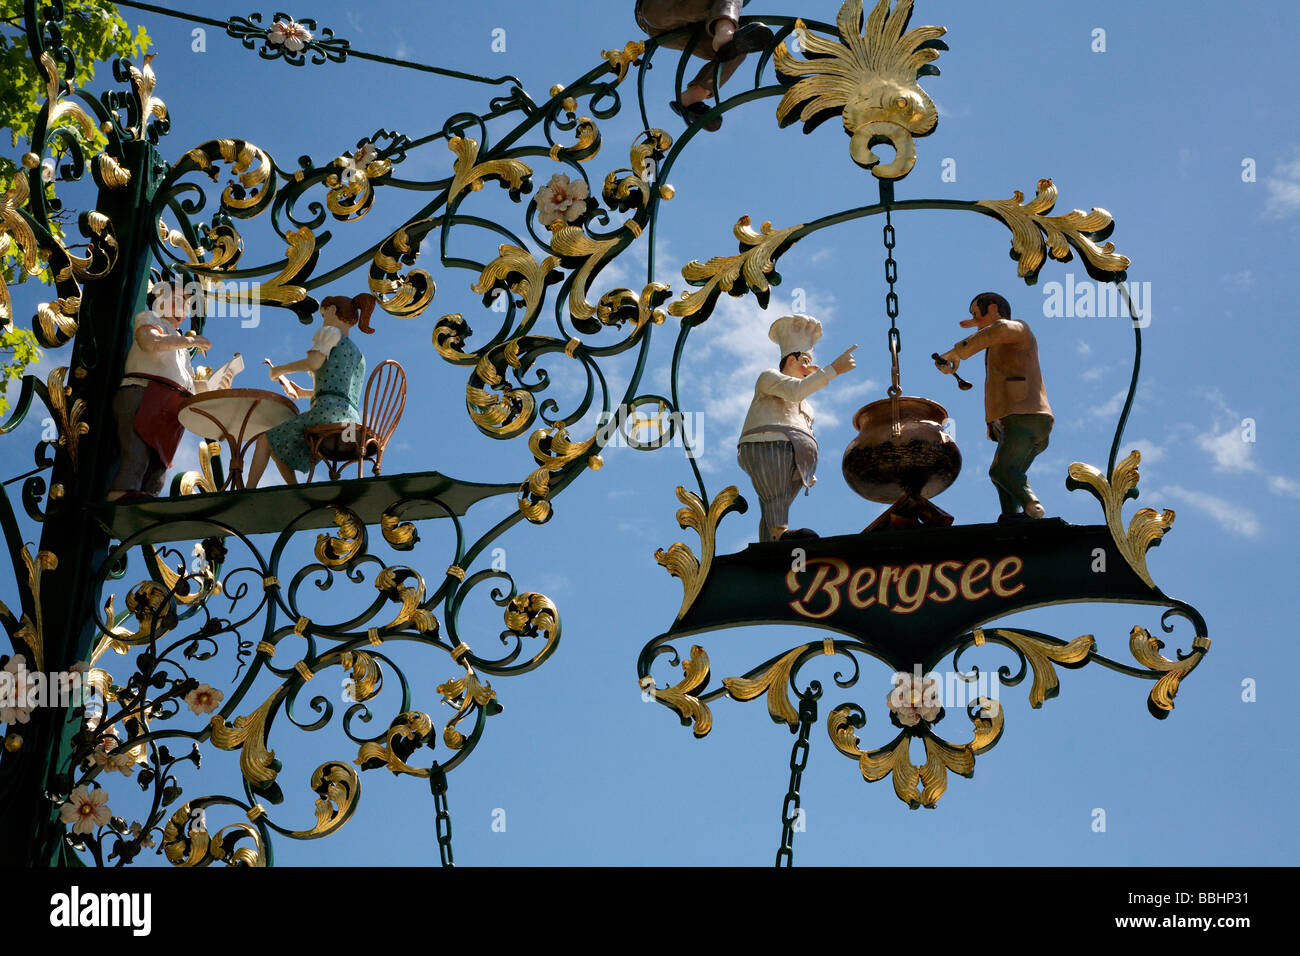 Wrought-iron advertising sign at Lake Titisee in the Black Forest, Baden-Wuerttemberg, Germany, Europe - Stock Image